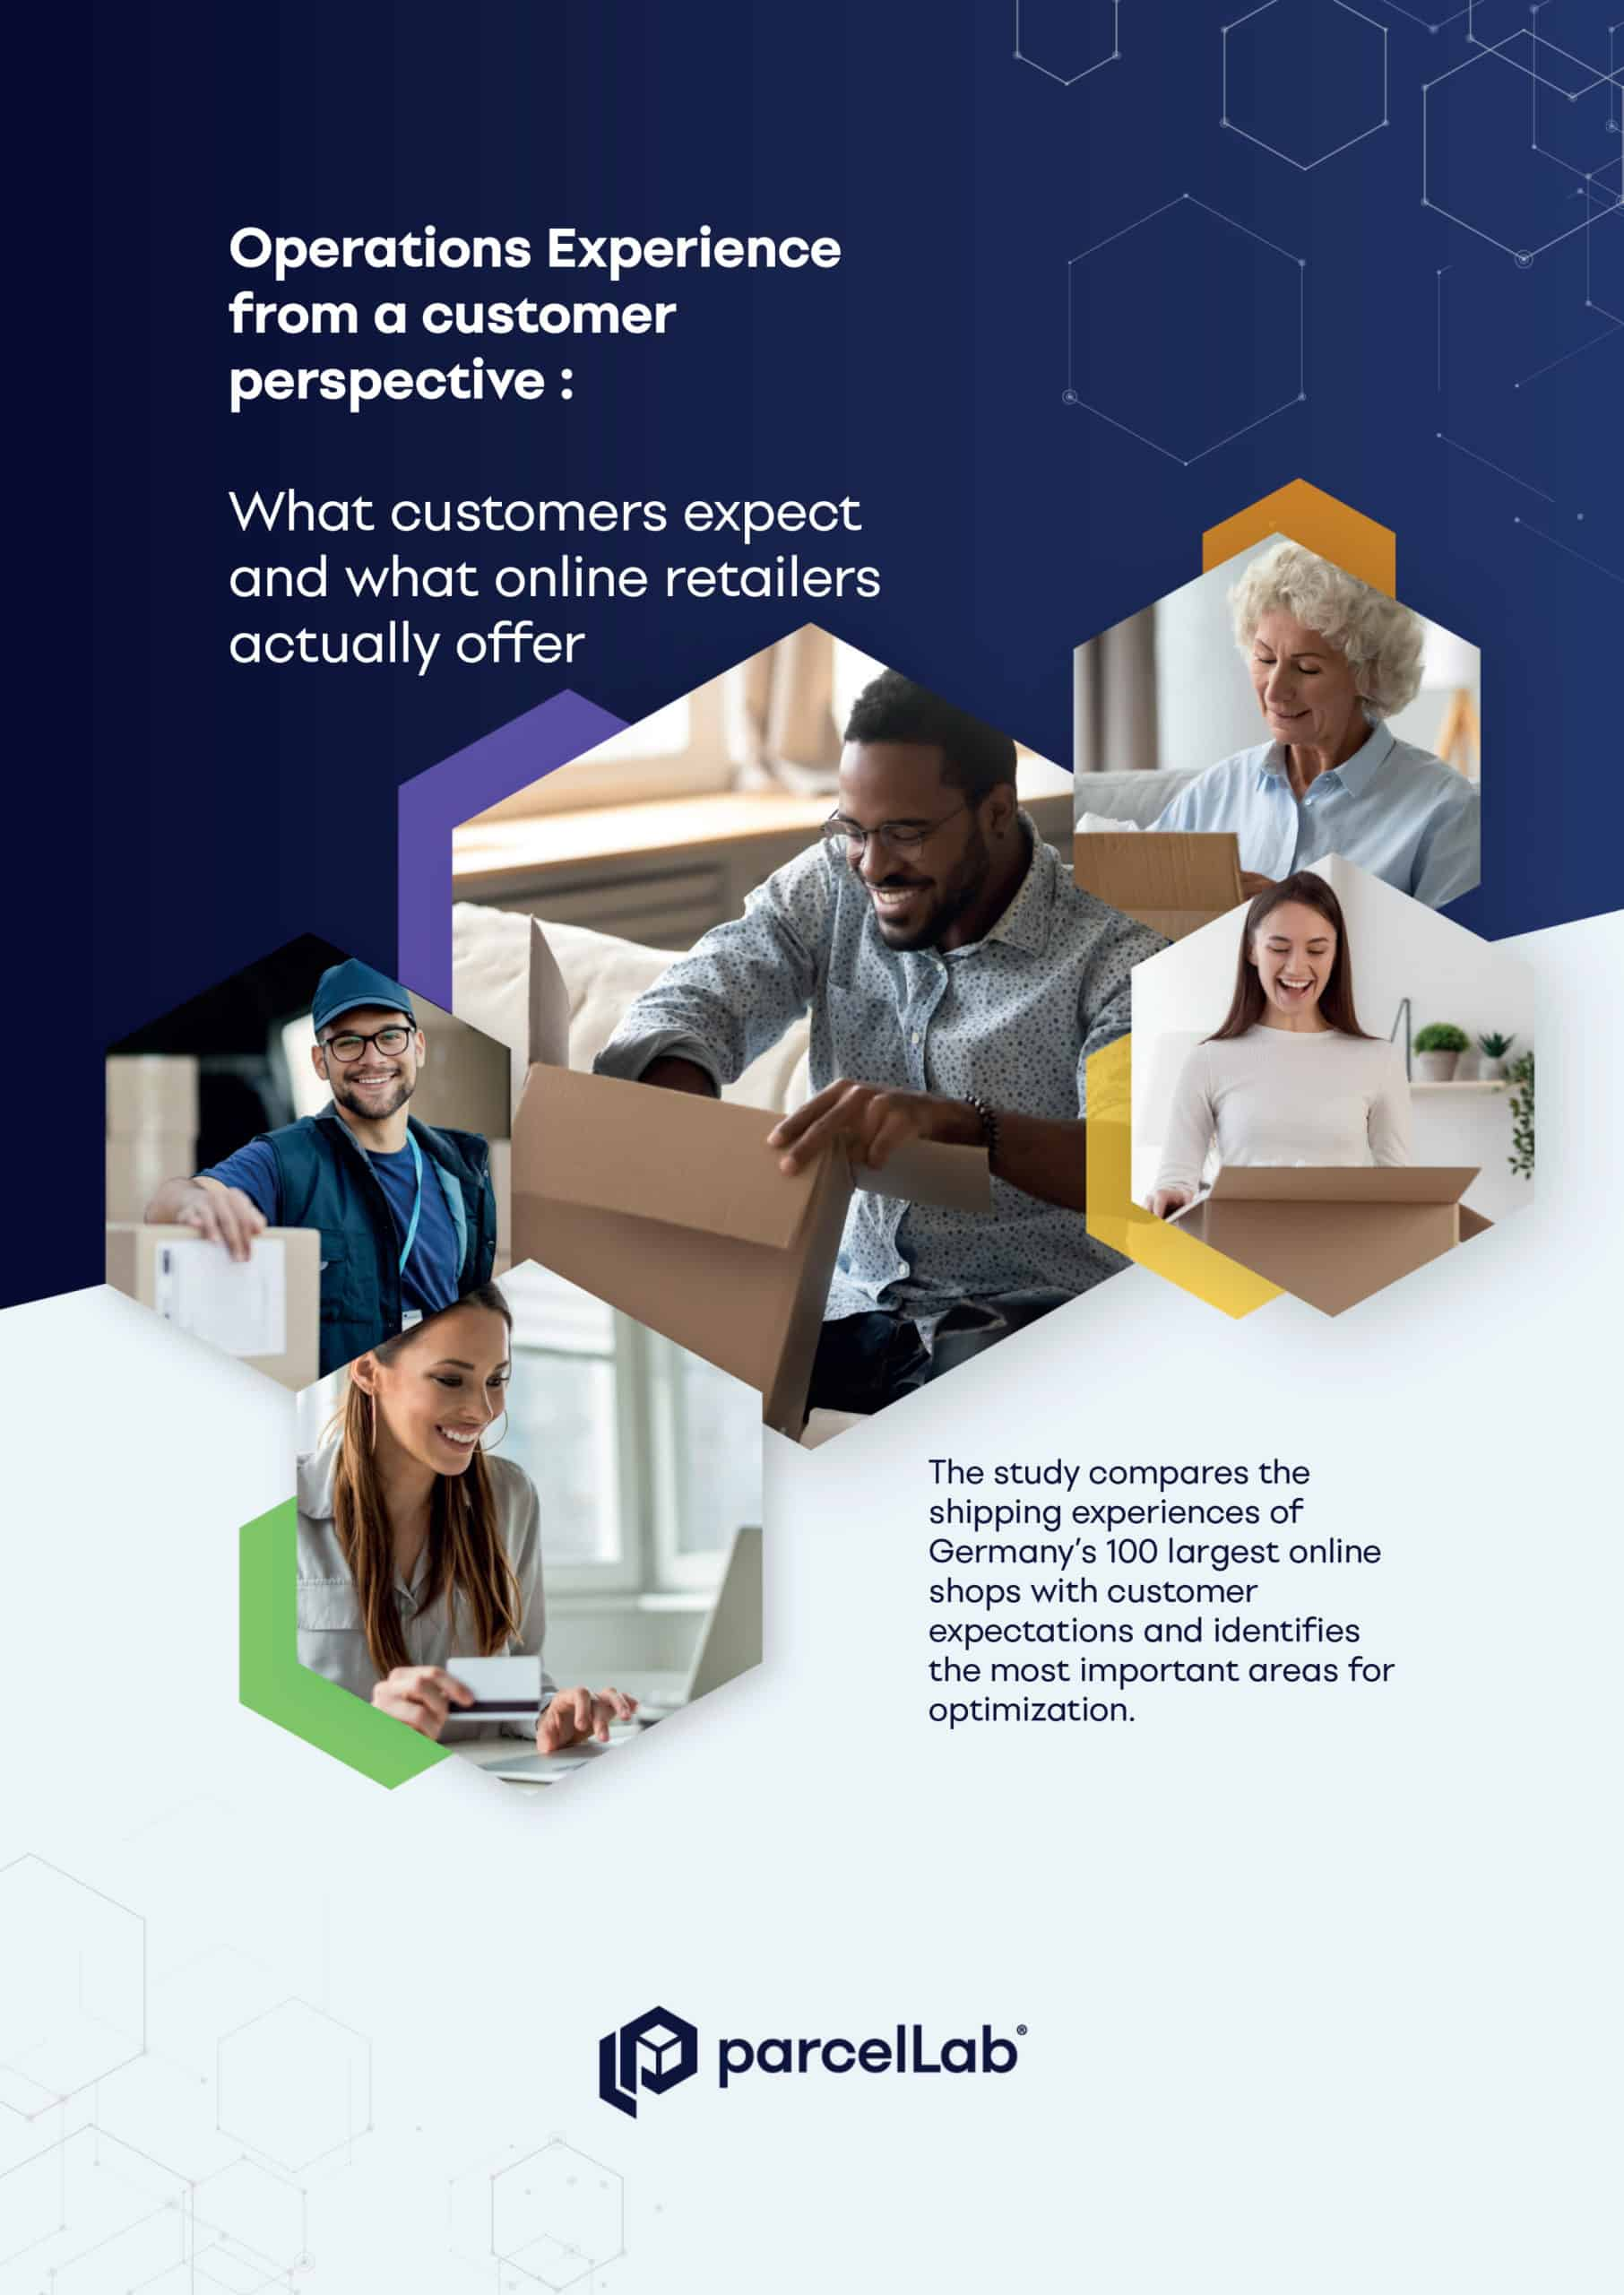 parcellab personalized consumer experience study of people unboxing packages